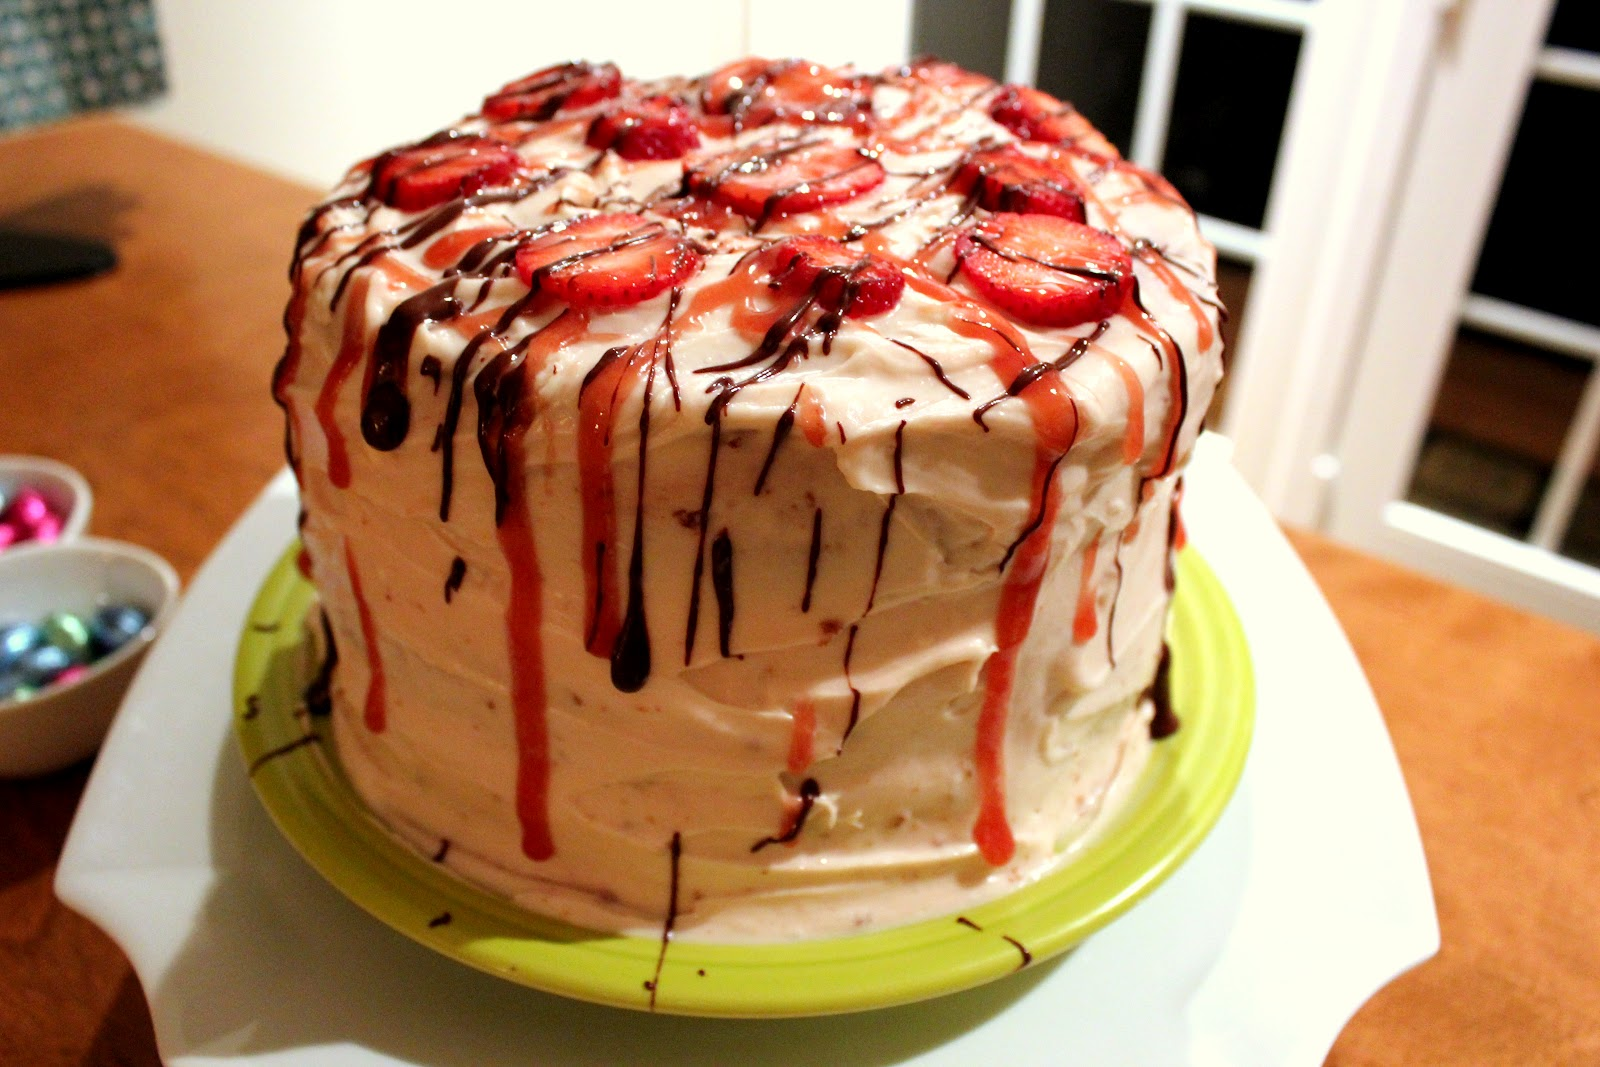 Layered Cake Recipes With Fillings: Three Layer Vanilla Cake With Strawberry Filling